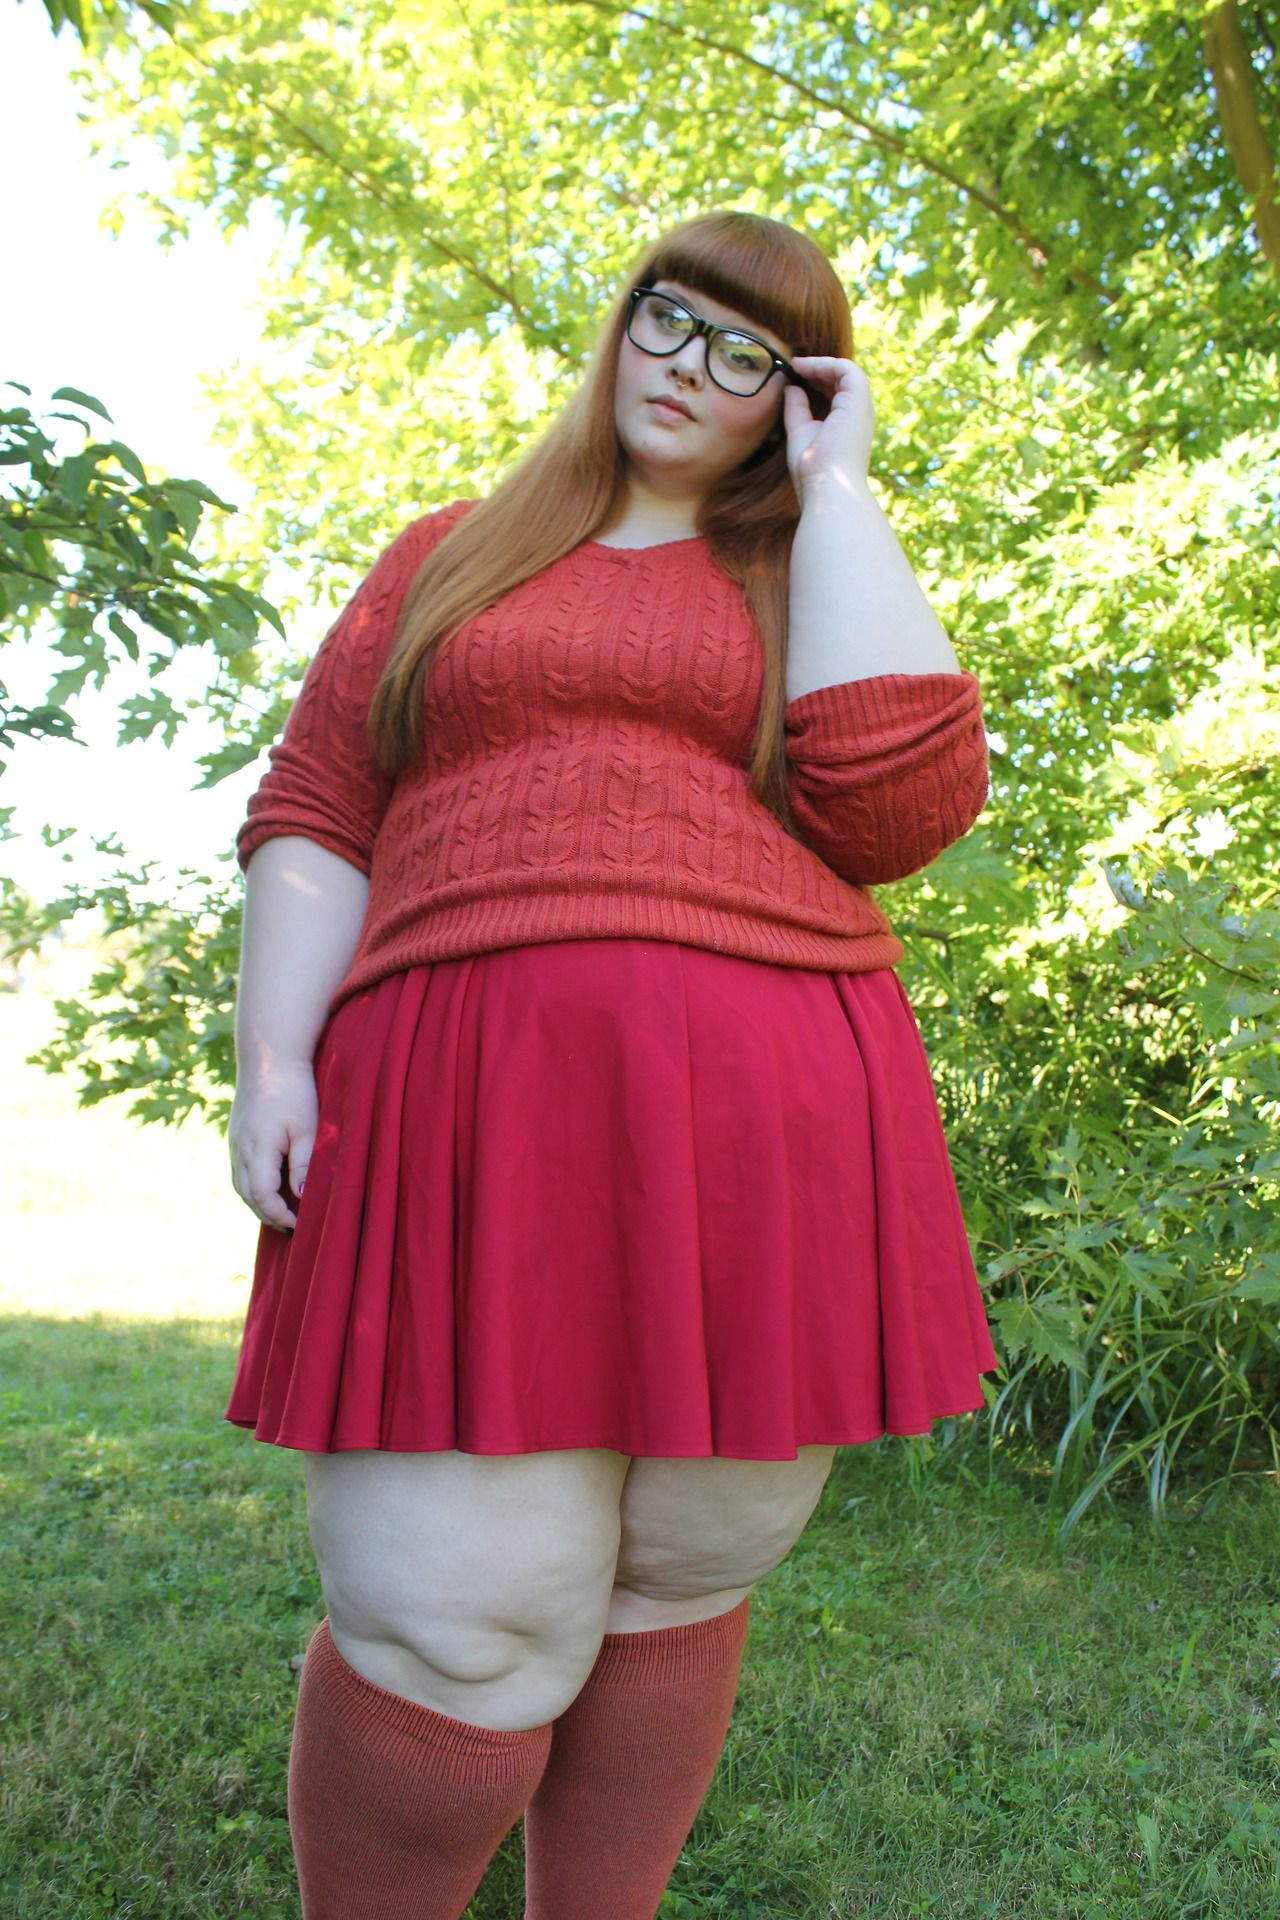 ocate bbw dating site Find meetups about bbw dating and meet people in your local community who share your interests.